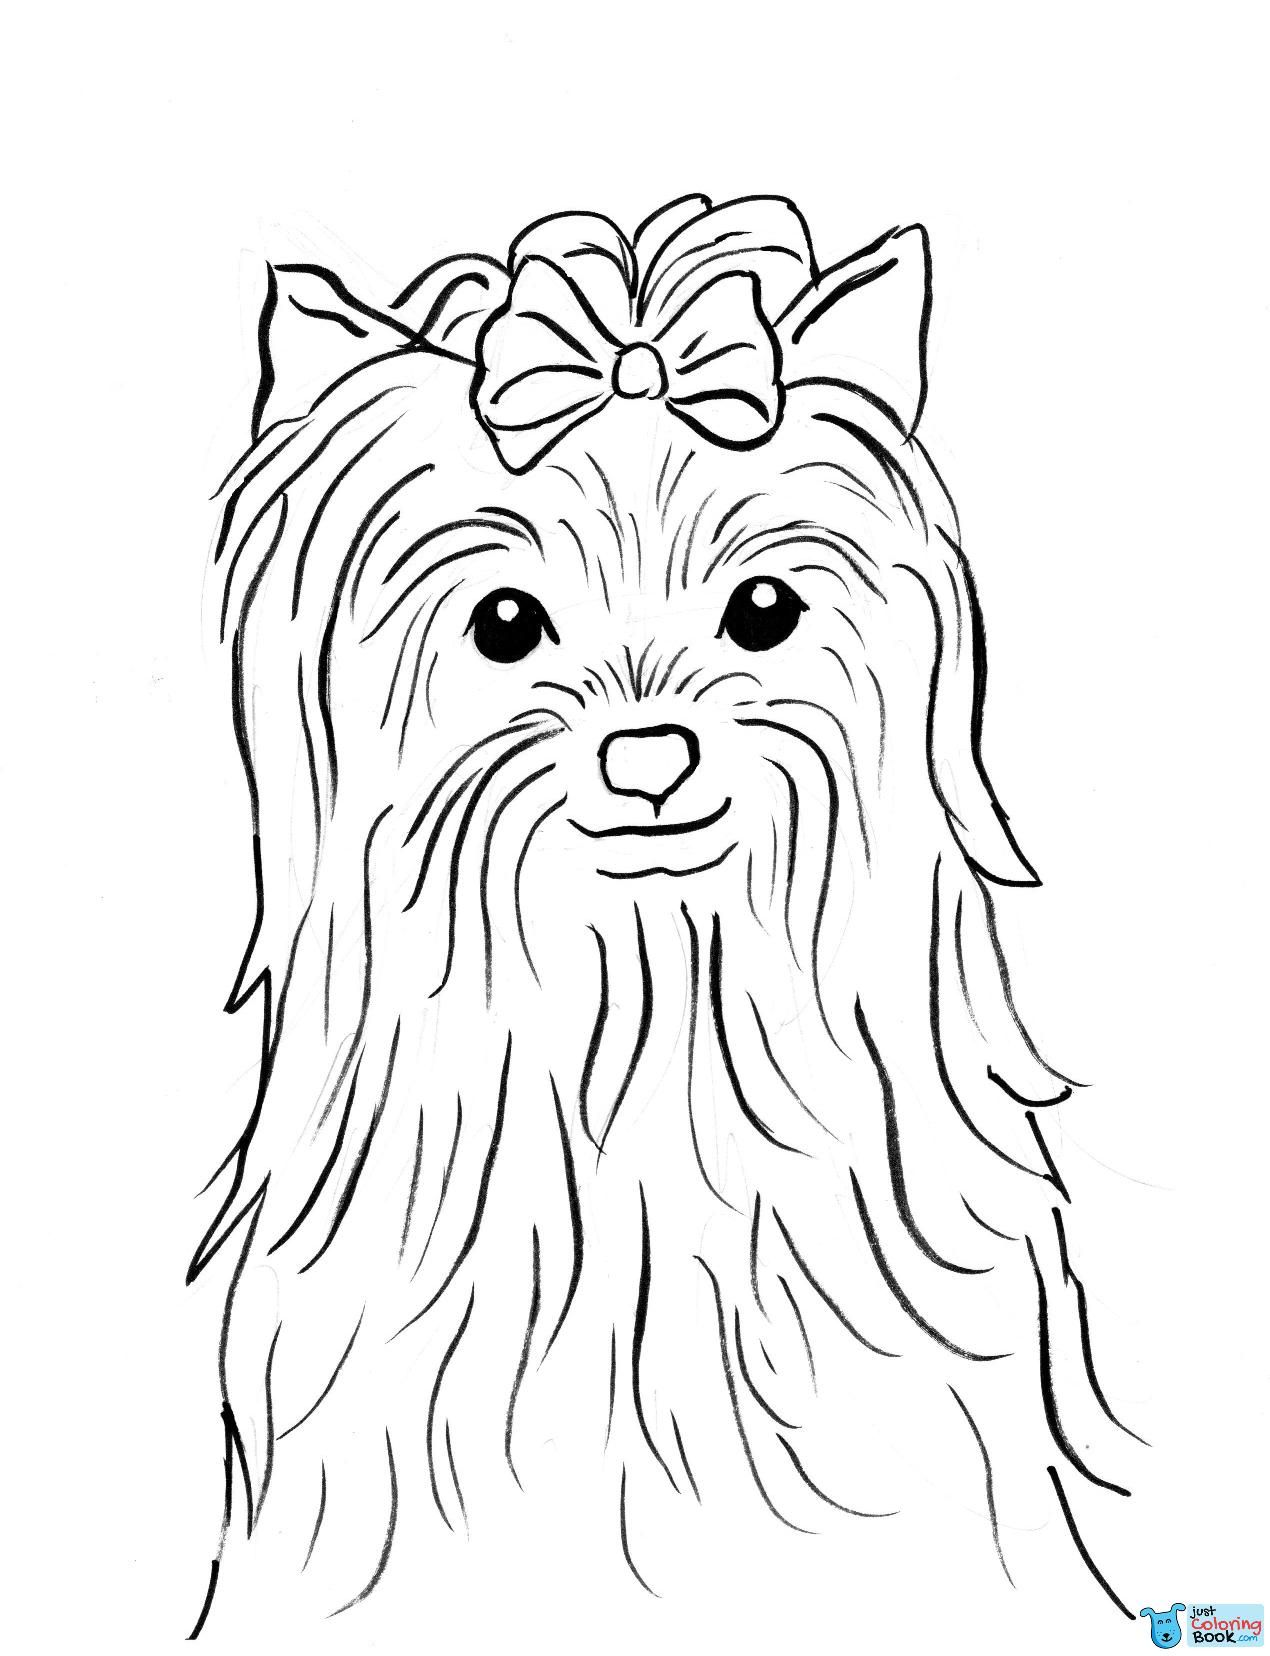 Part 145 Zootopia Judy Hopps Coloring Pages In Silky Terrier Coloring Pages Free Download Dog Coloring Page Puppy Coloring Pages Animal Coloring Pages